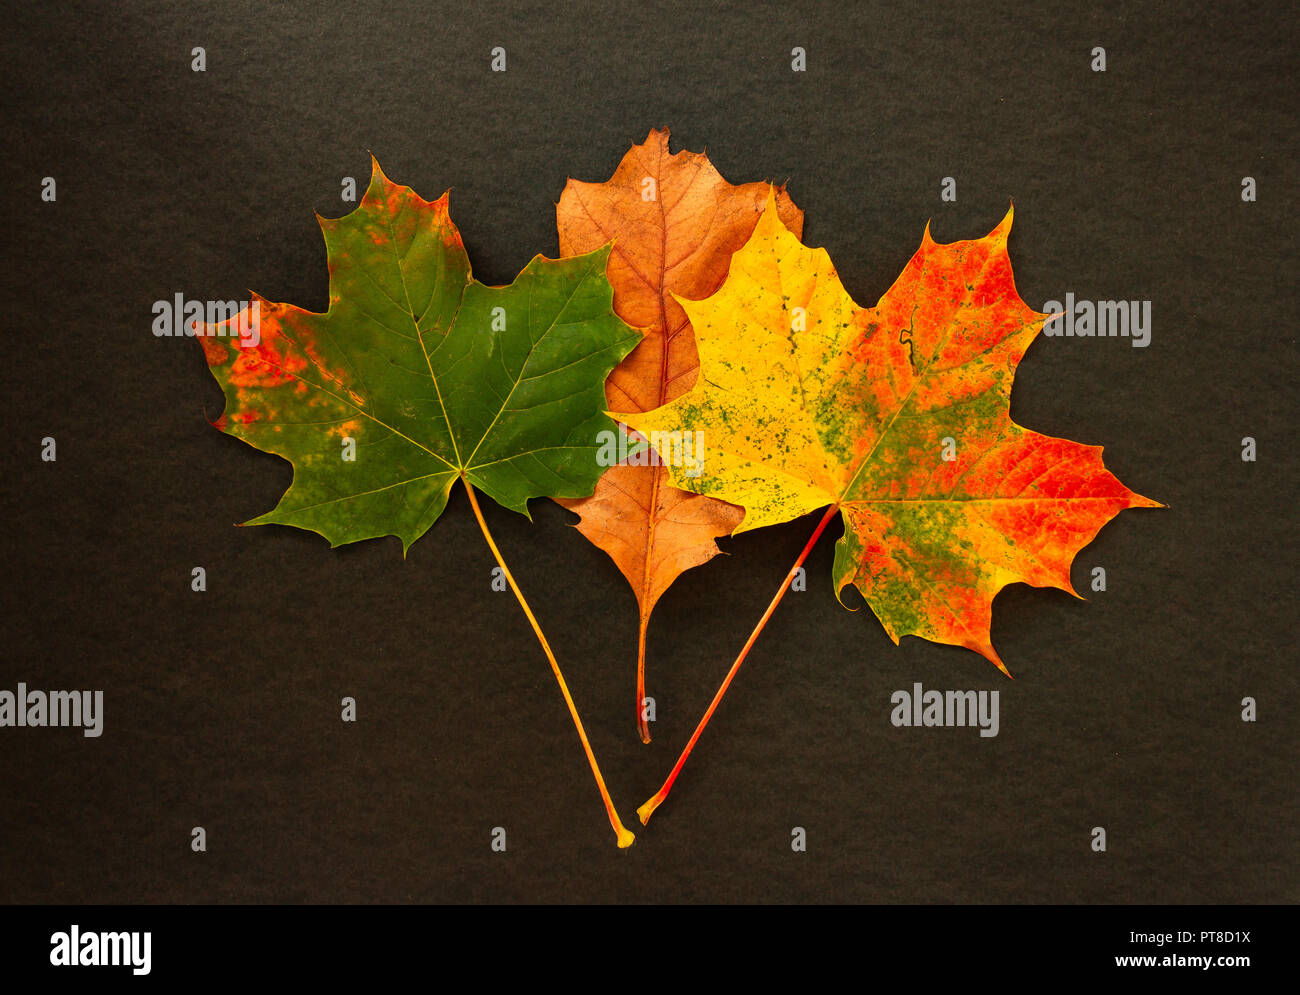 Colorful Autumn leaves on a black background Stock Photo